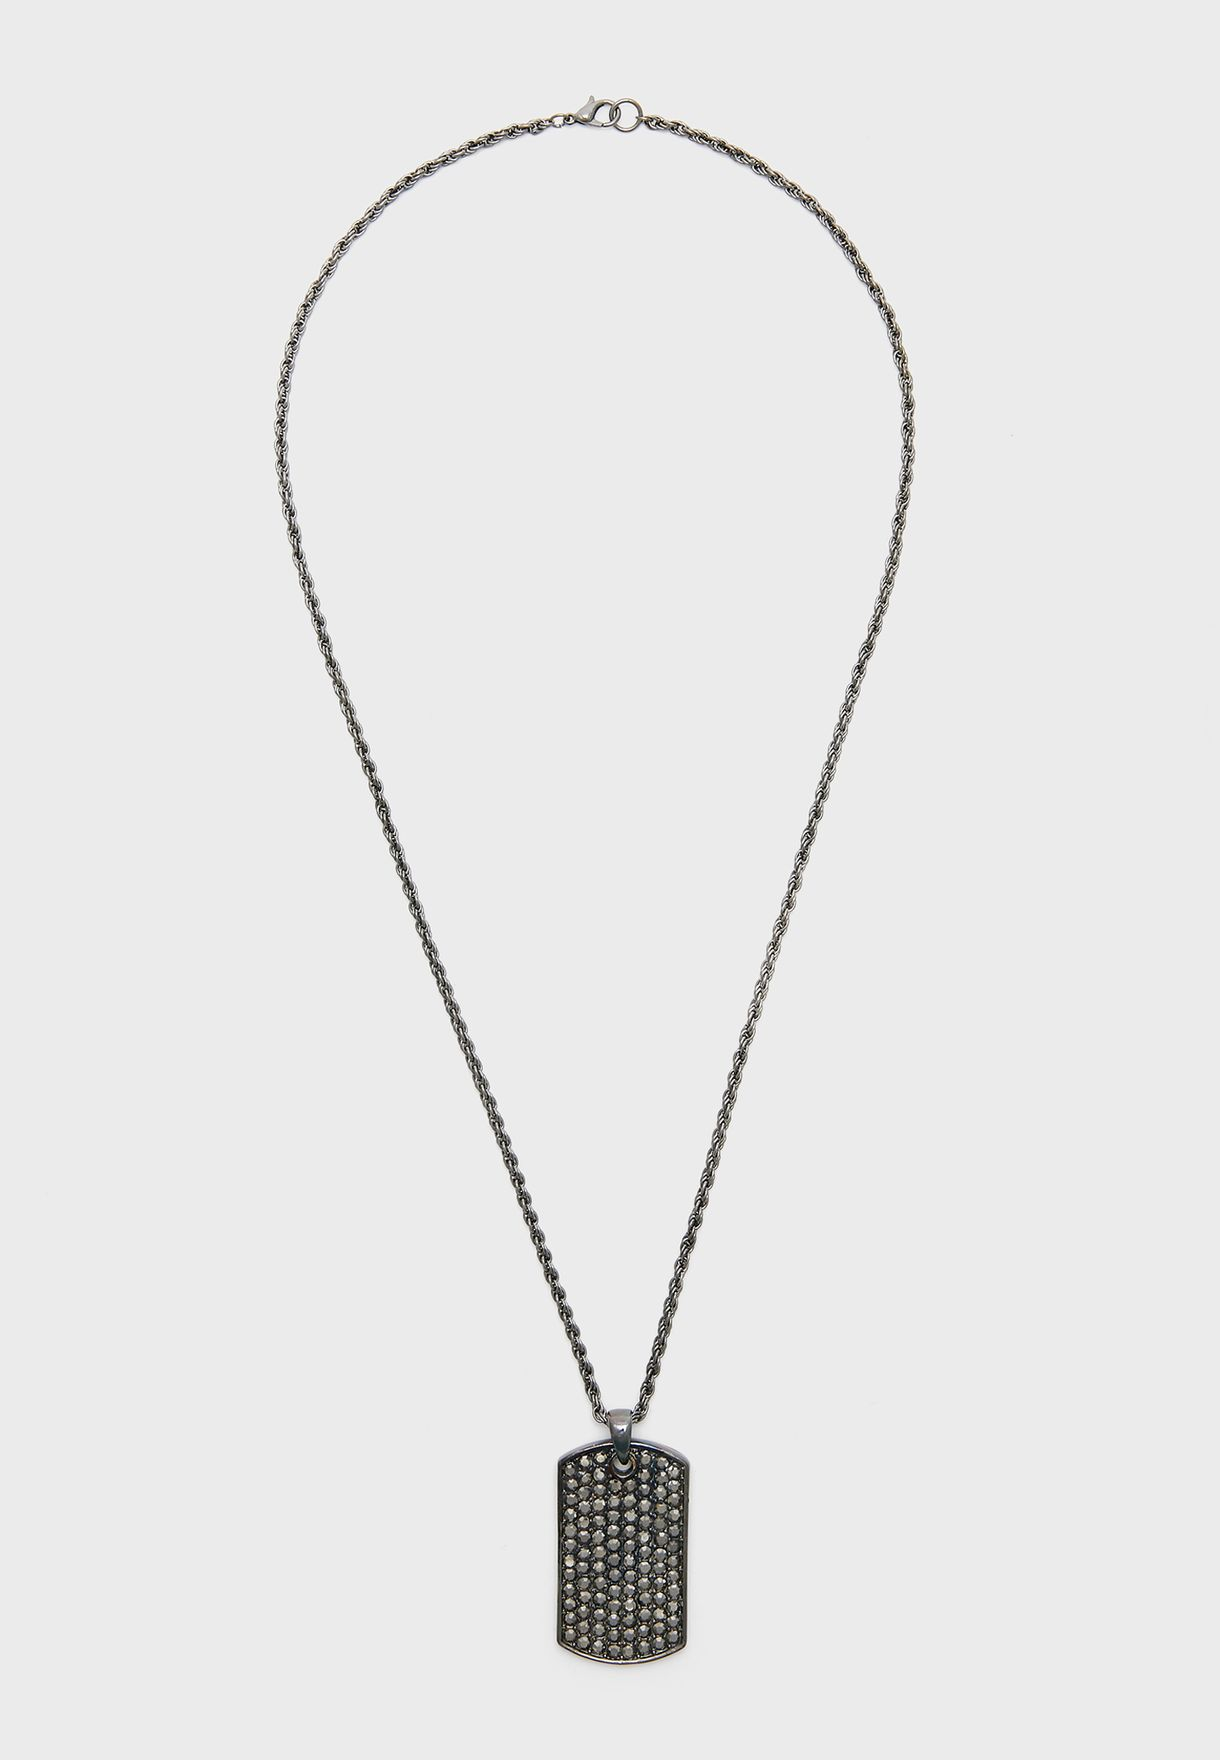 Thaswen Tag Pendant Necklace